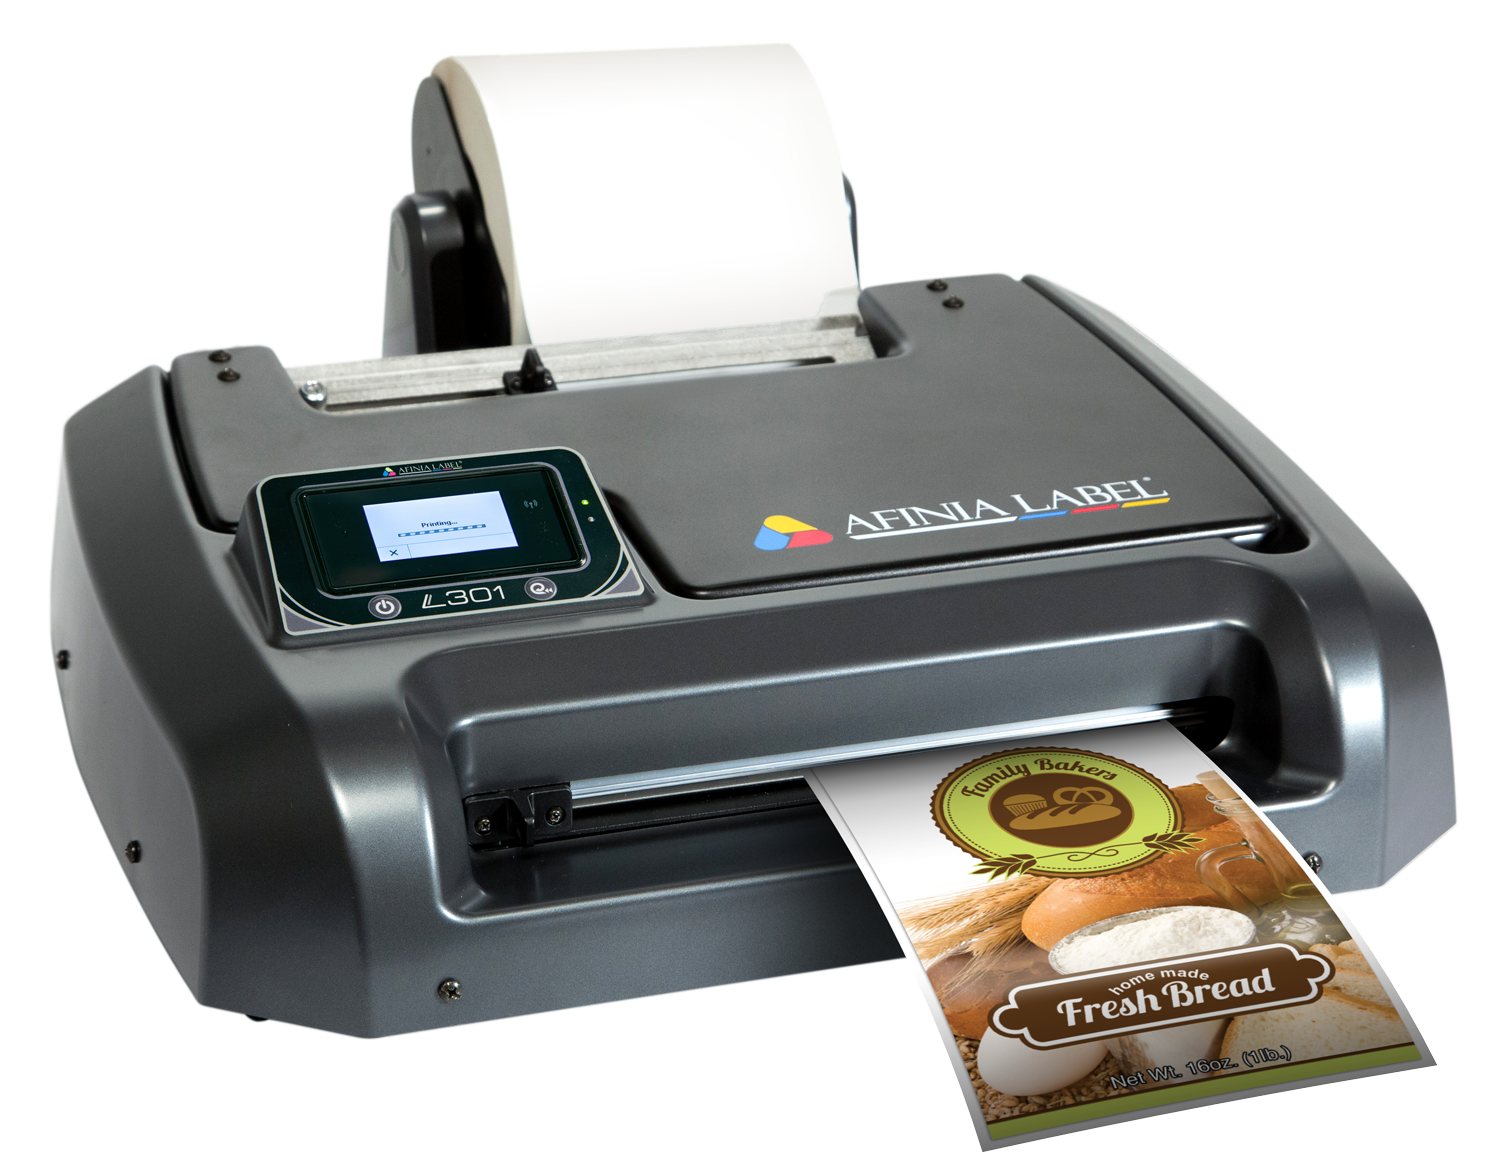 L301 Industrial Color Label Printer for Small Business - Afinia Label